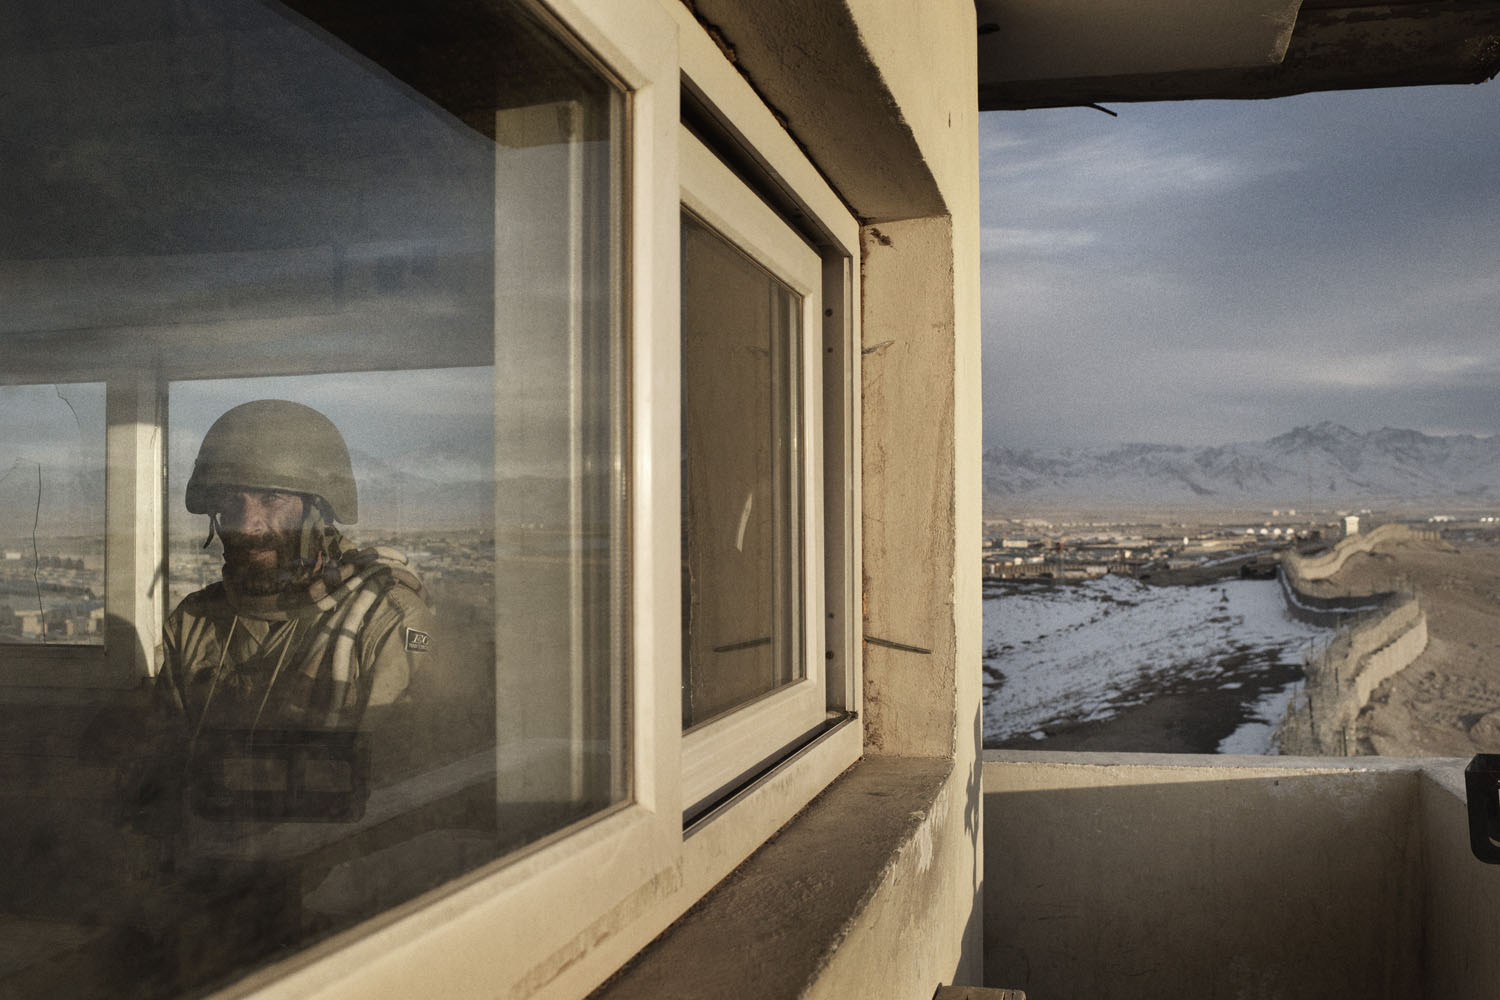 An Afghan soldier guards the perimeter of Forward Operating Base Shank in Logar Province, Afghanistan.